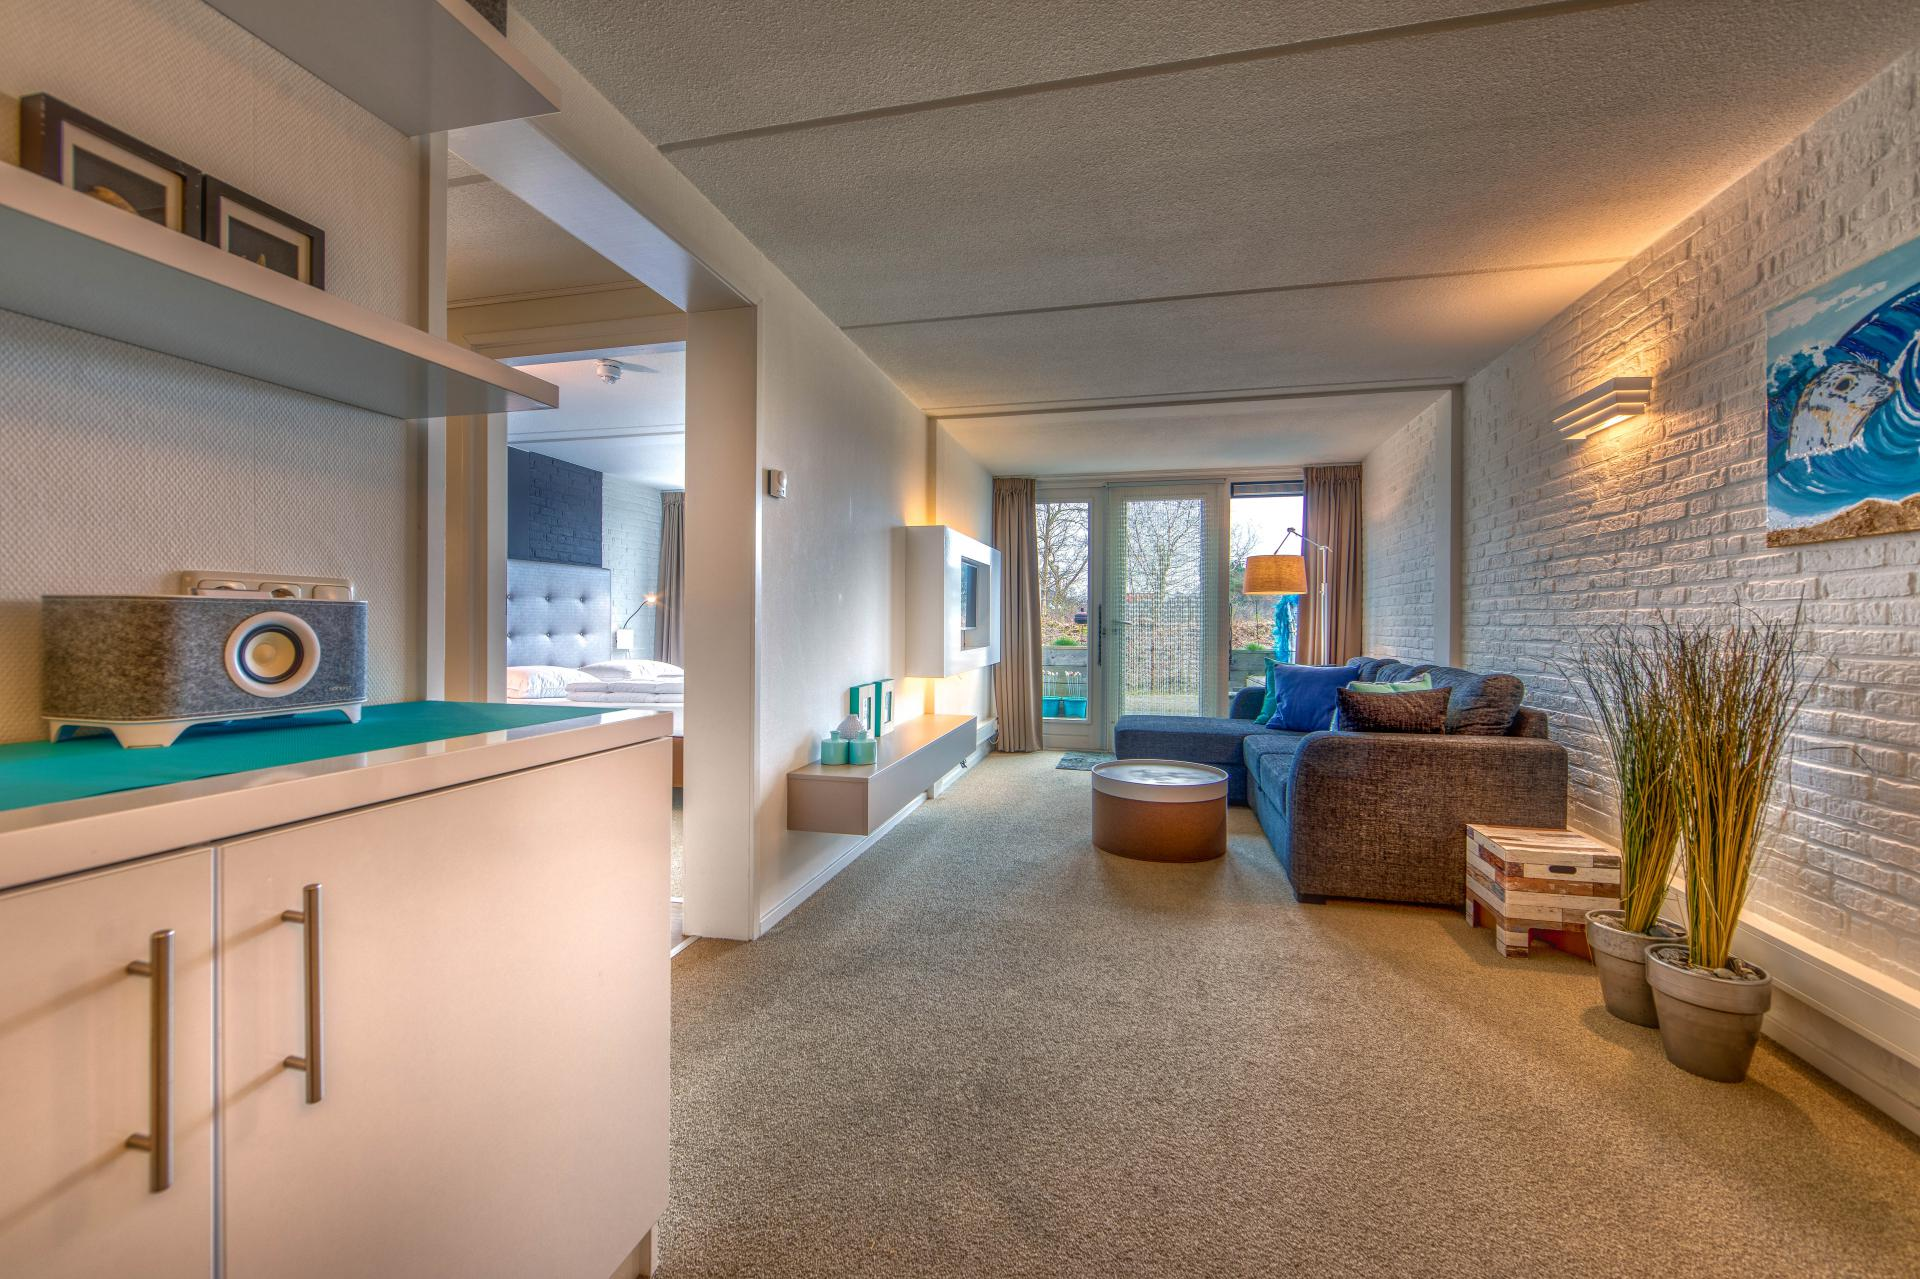 Luxe Appartement - 4 pers - nr: 7